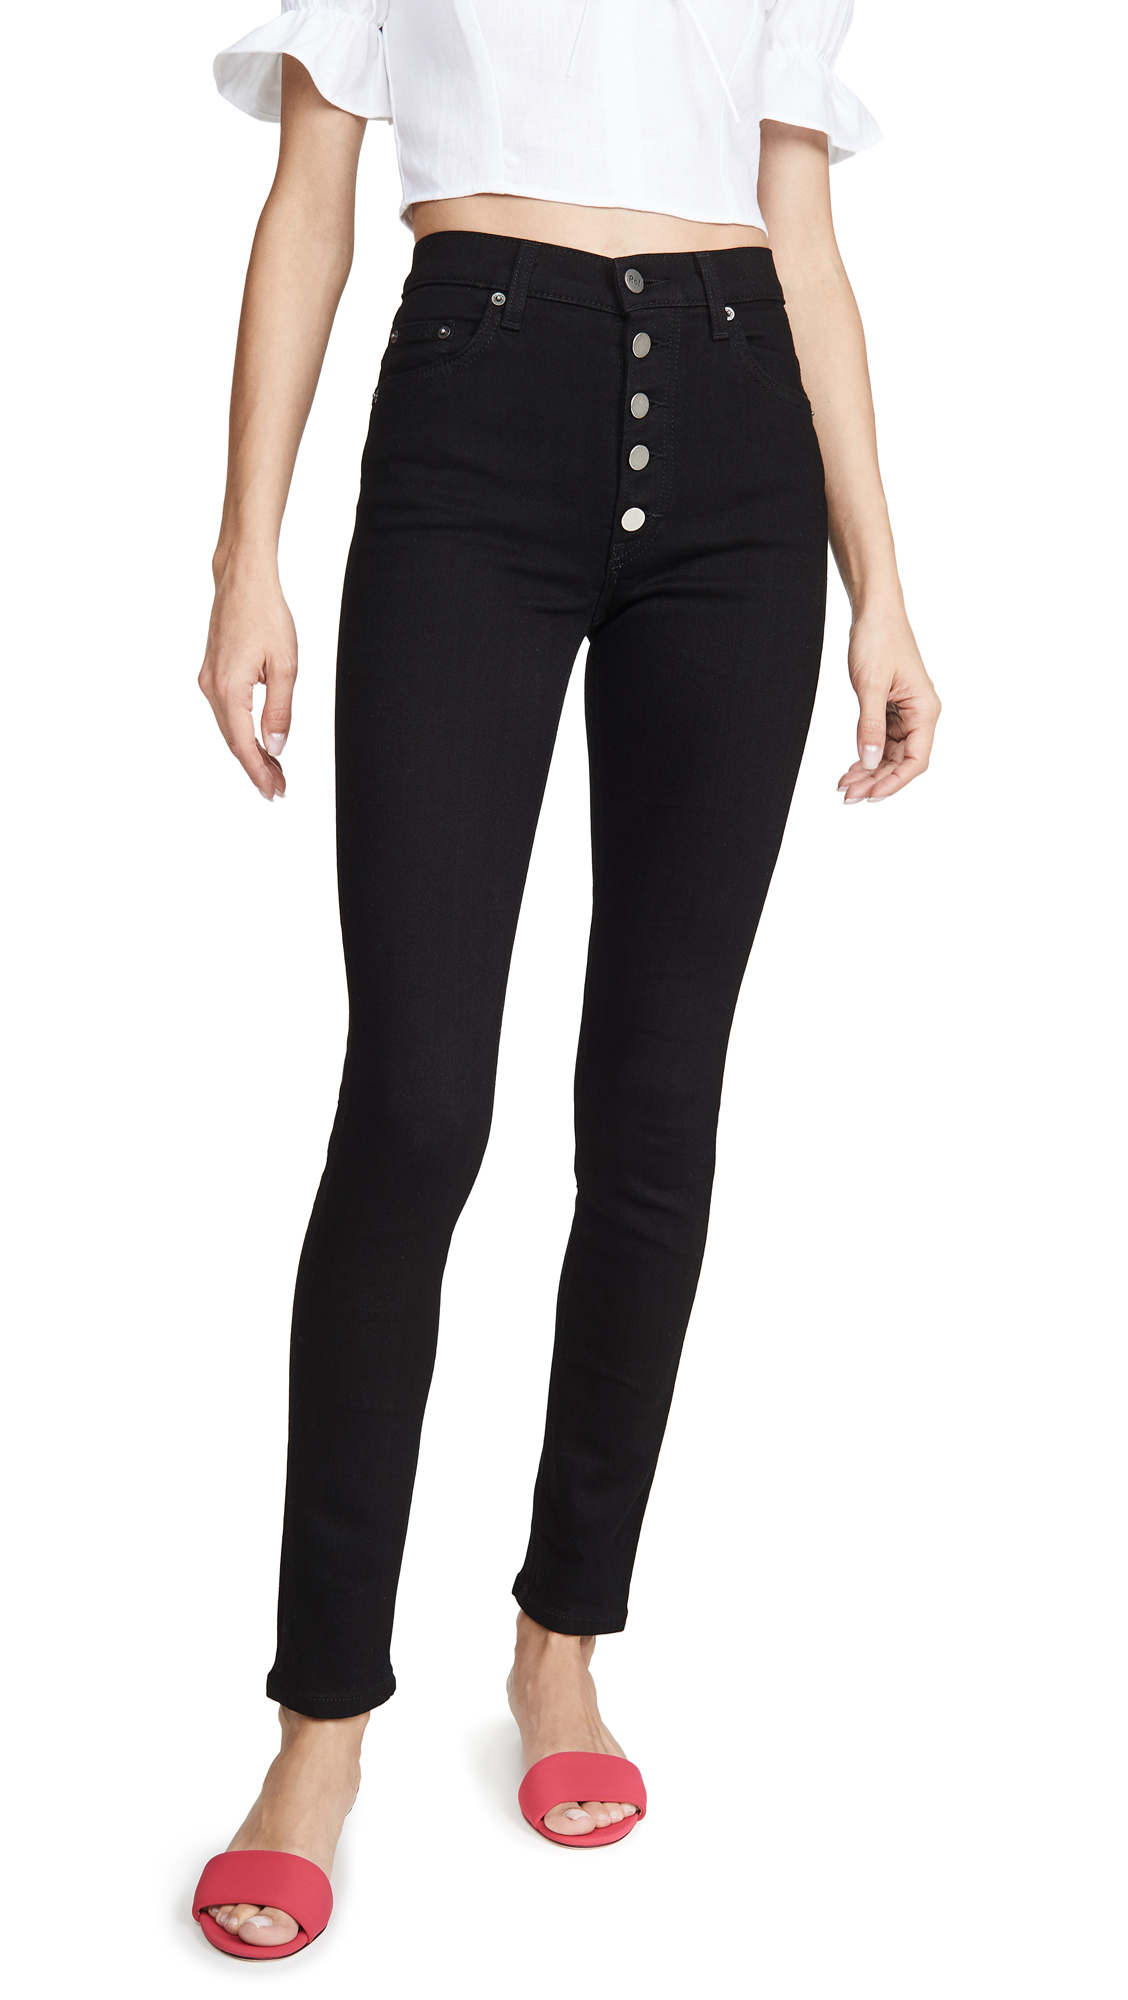 Reformation Cory High Waisted Skinny Jeans